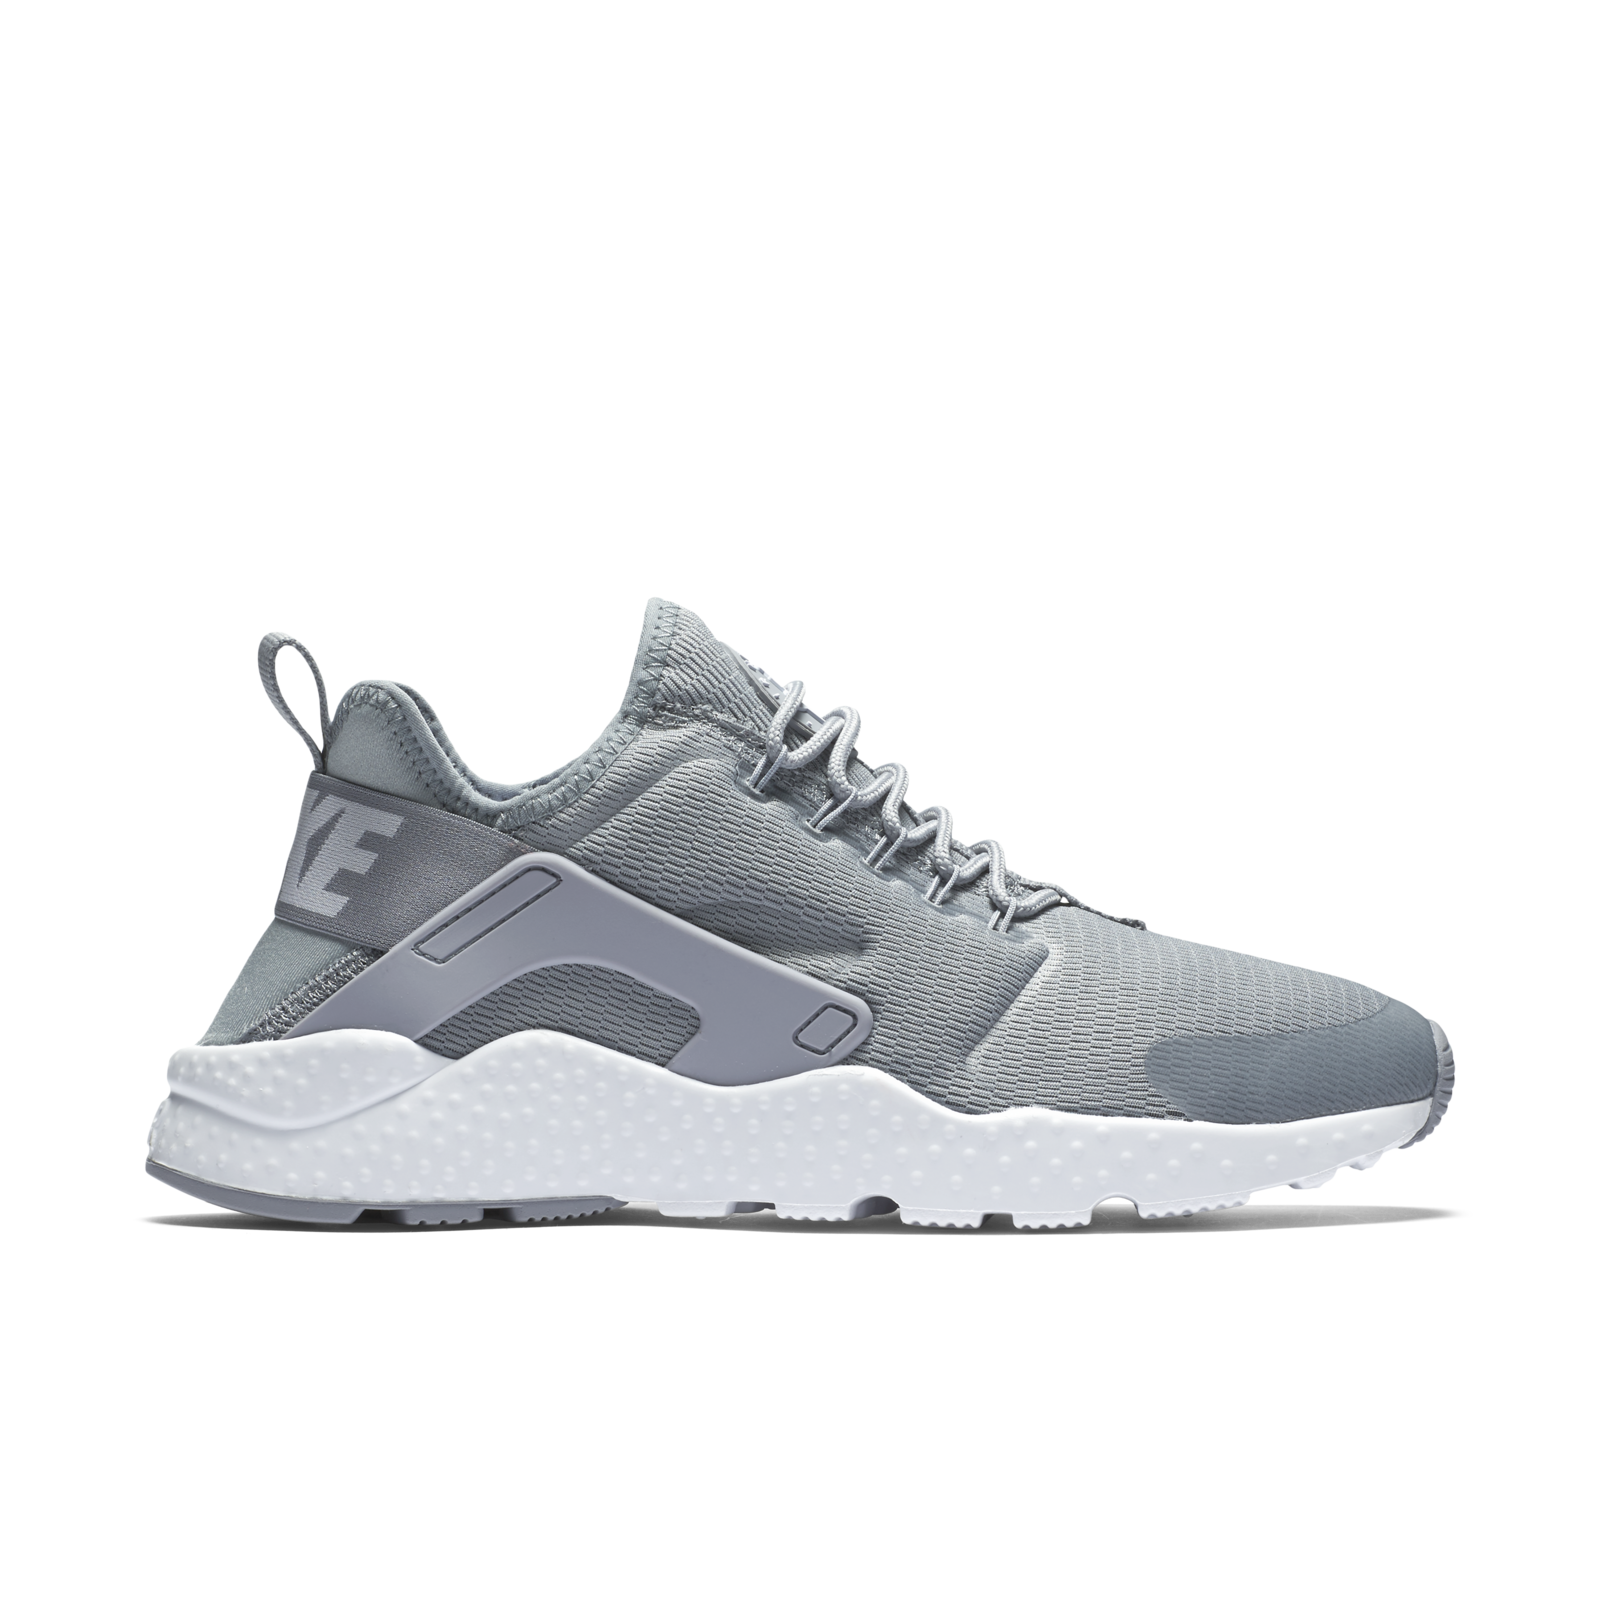 best loved 4925f 225f1 Less Is More The Air Huarache Ultra - Nike News